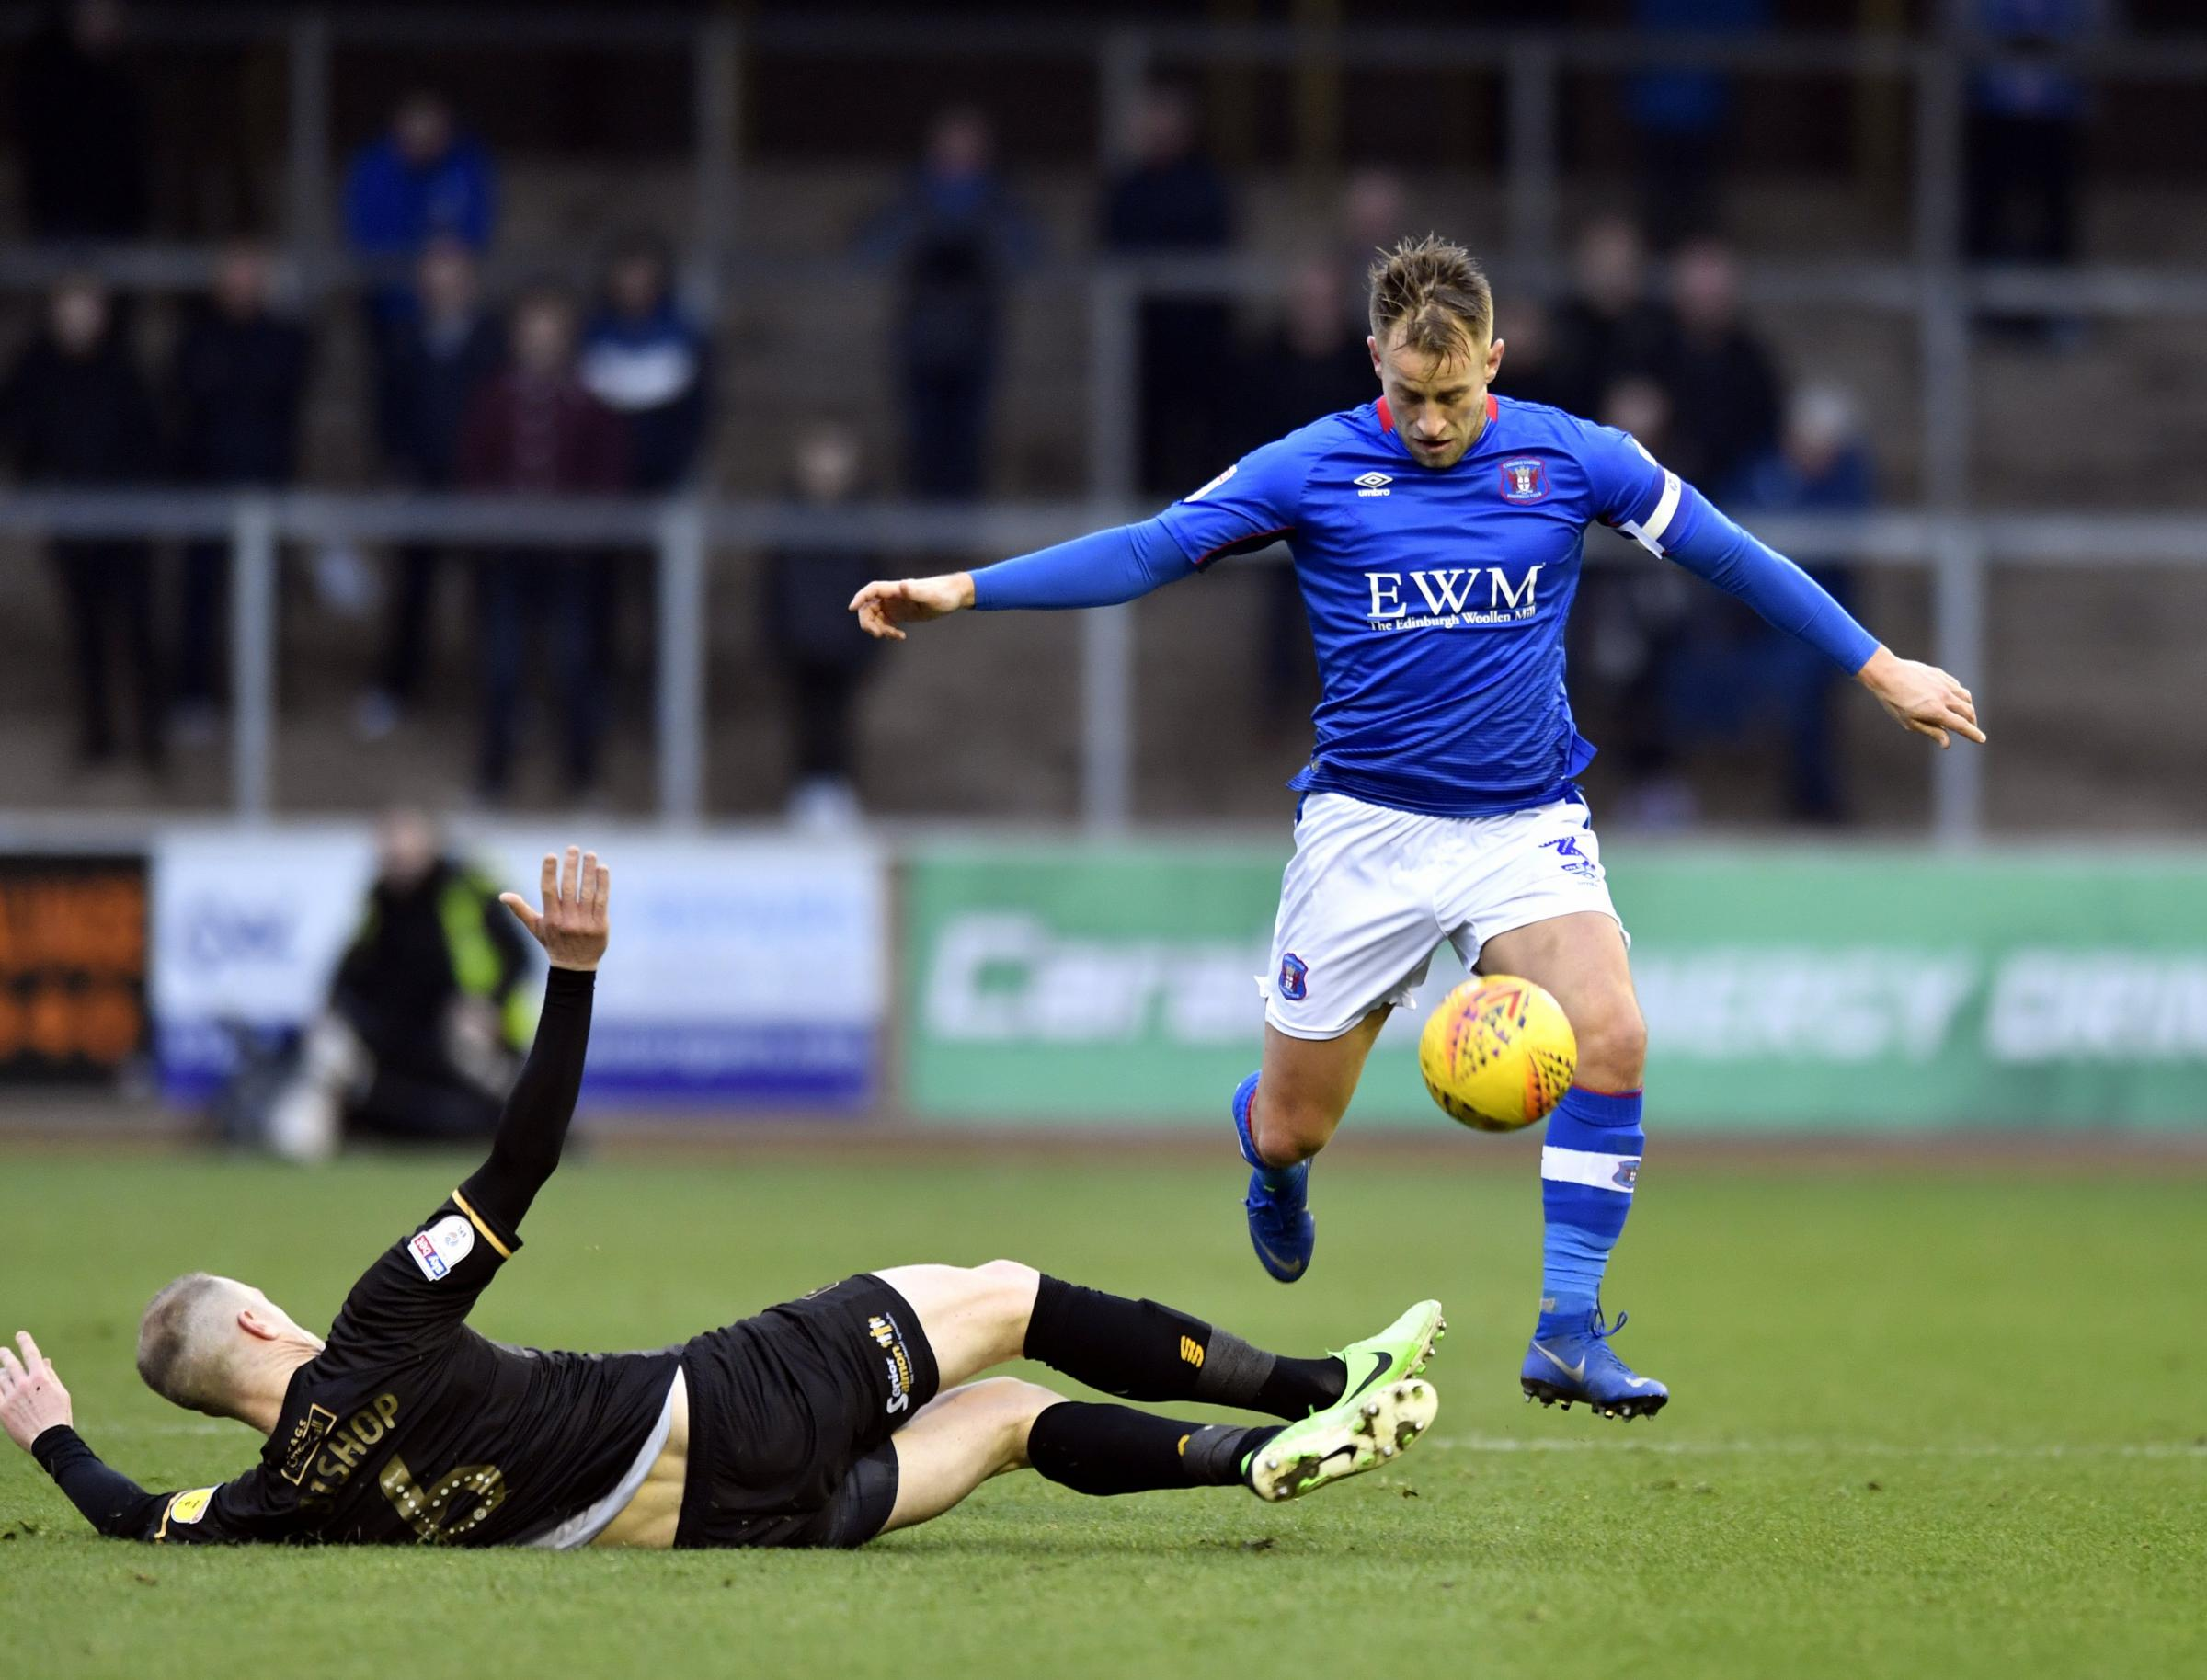 Captain: Carlisle United's Danny Grainger says Saturday's win was an important one for the fans after John Sheridan's departure